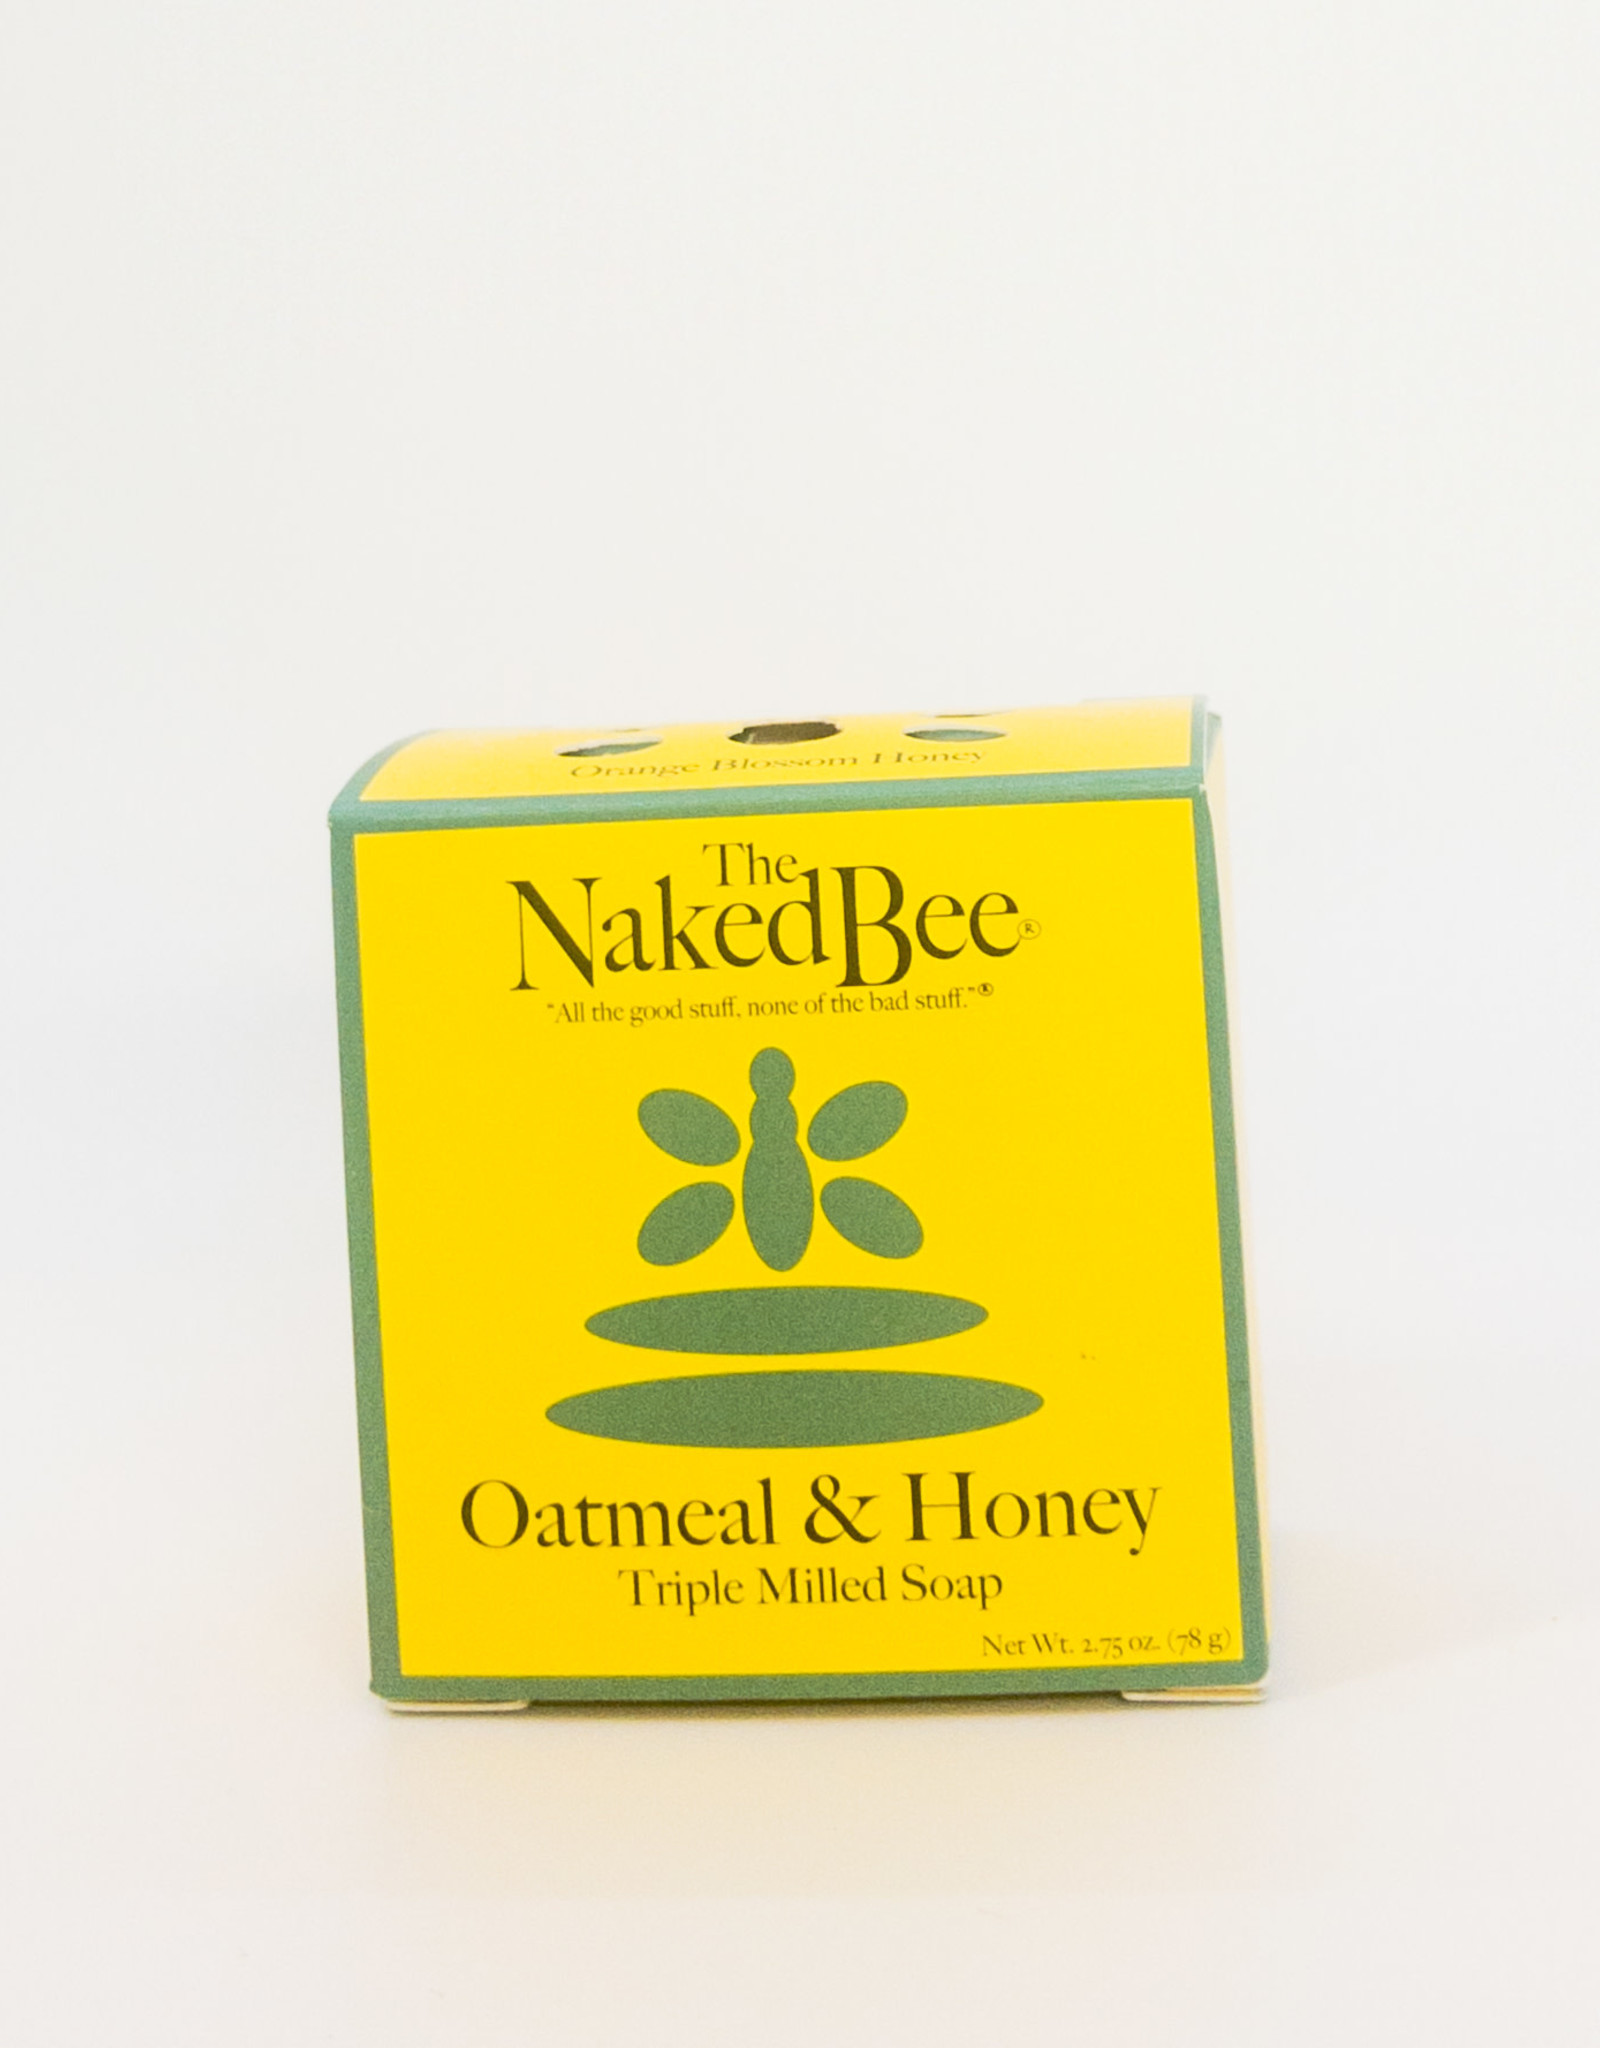 The Naked Bee The Naked Bee - Triple Milled Soap in Oatmeal and Honey, 2.75 oz.